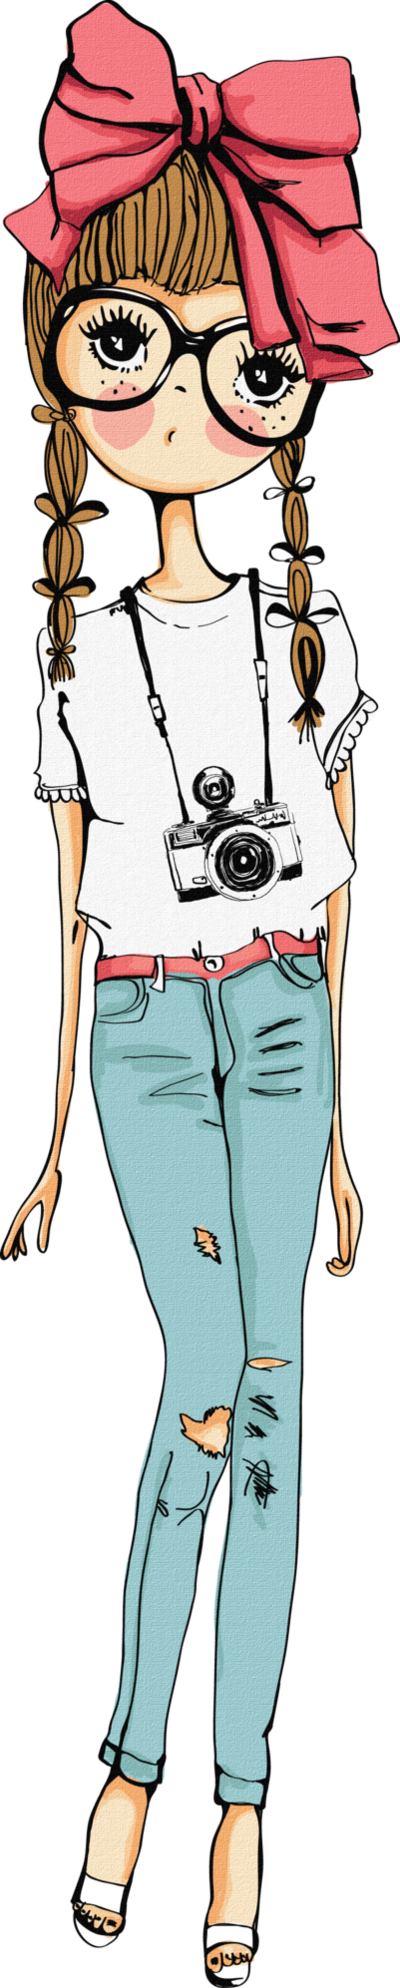 Vintage girl png by. Girls clipart camera